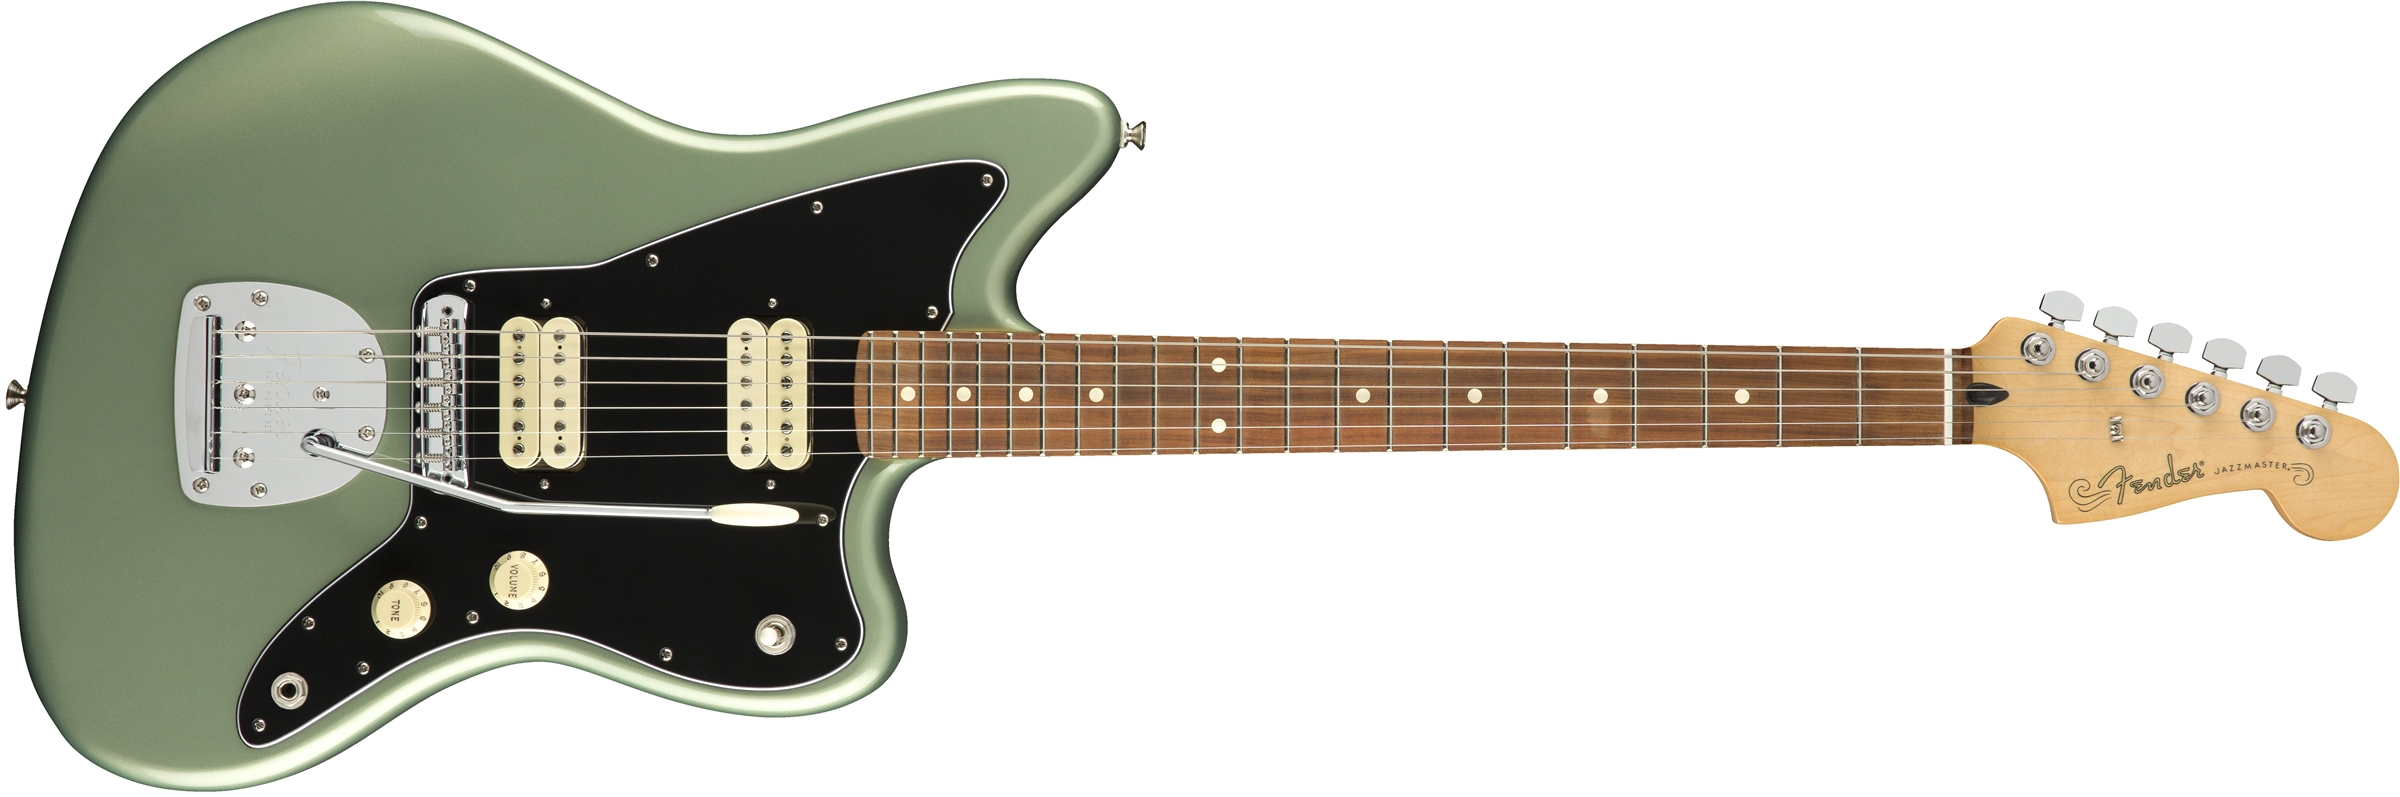 Fender Player Series Jazzmaster PF SGM